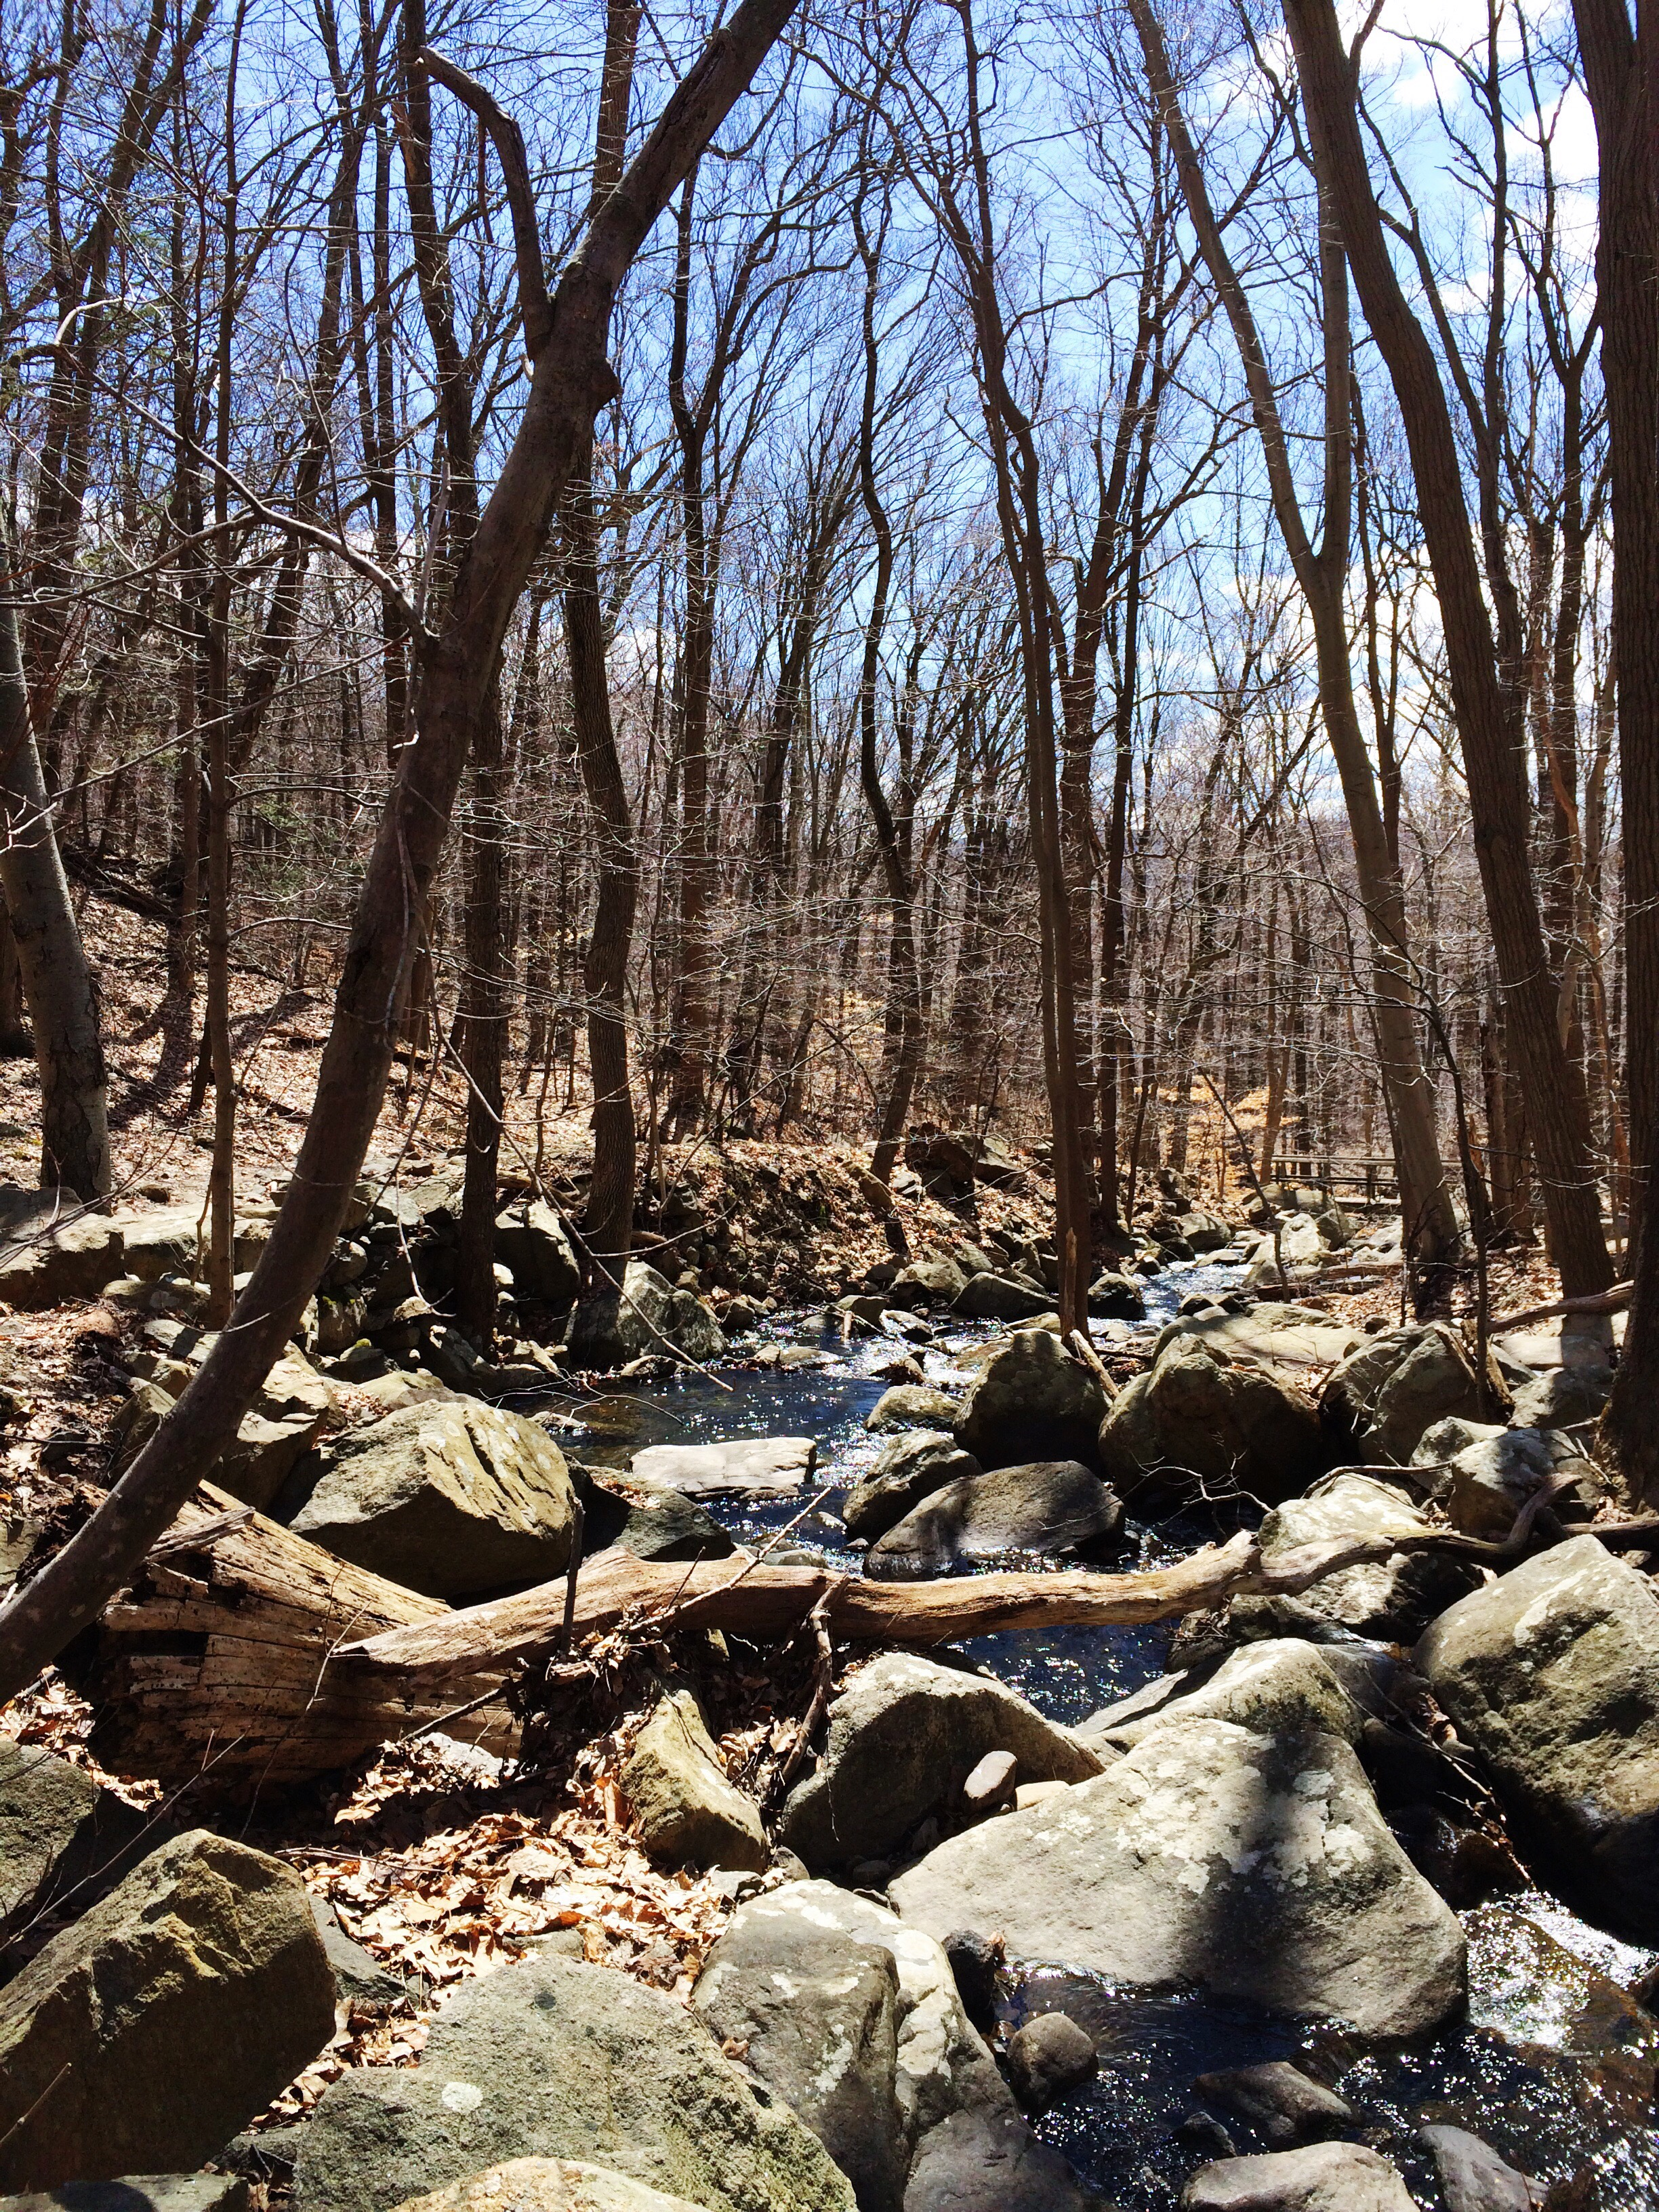 Along the trail in upstate NY, hiking up Mt. Taurus near the village ofCold Spring